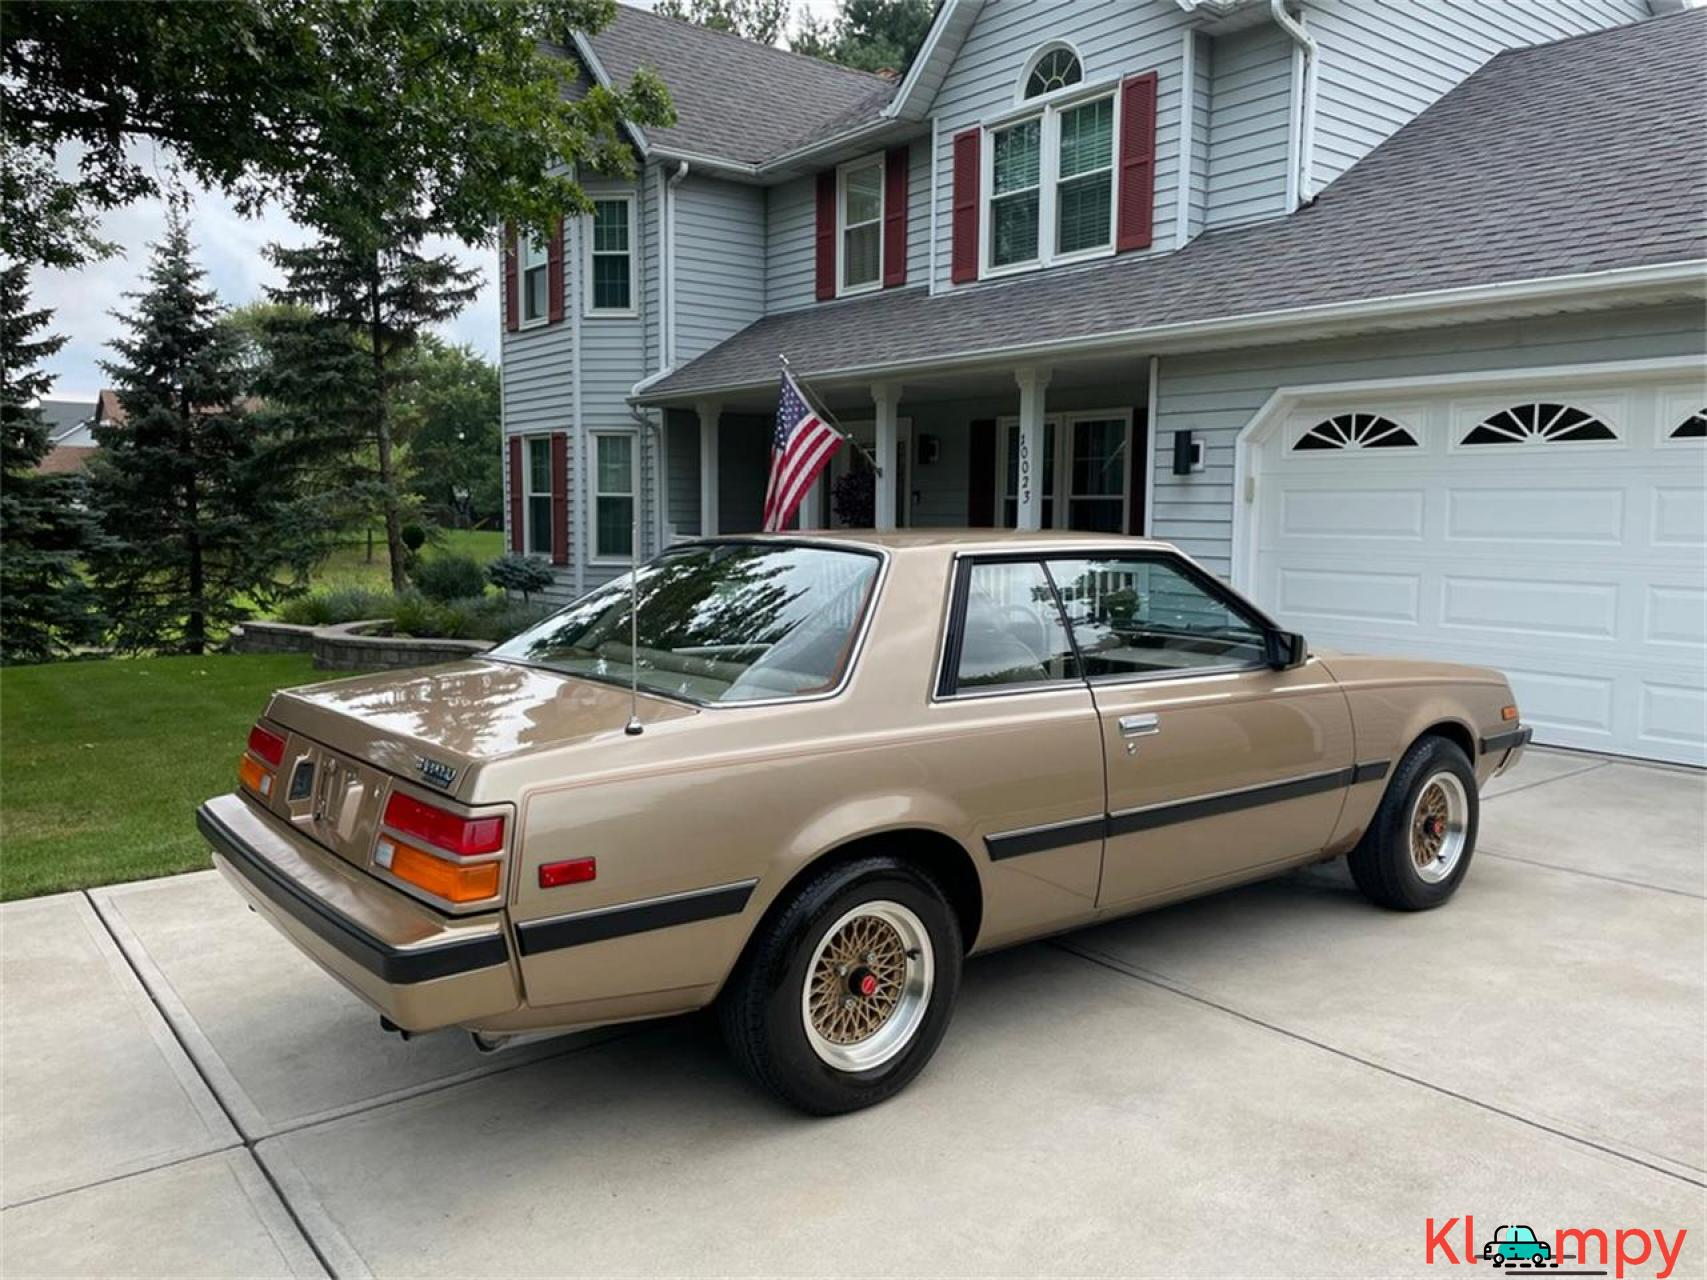 1983 Plymouth Sapporo 2.6L Engine - 8/18